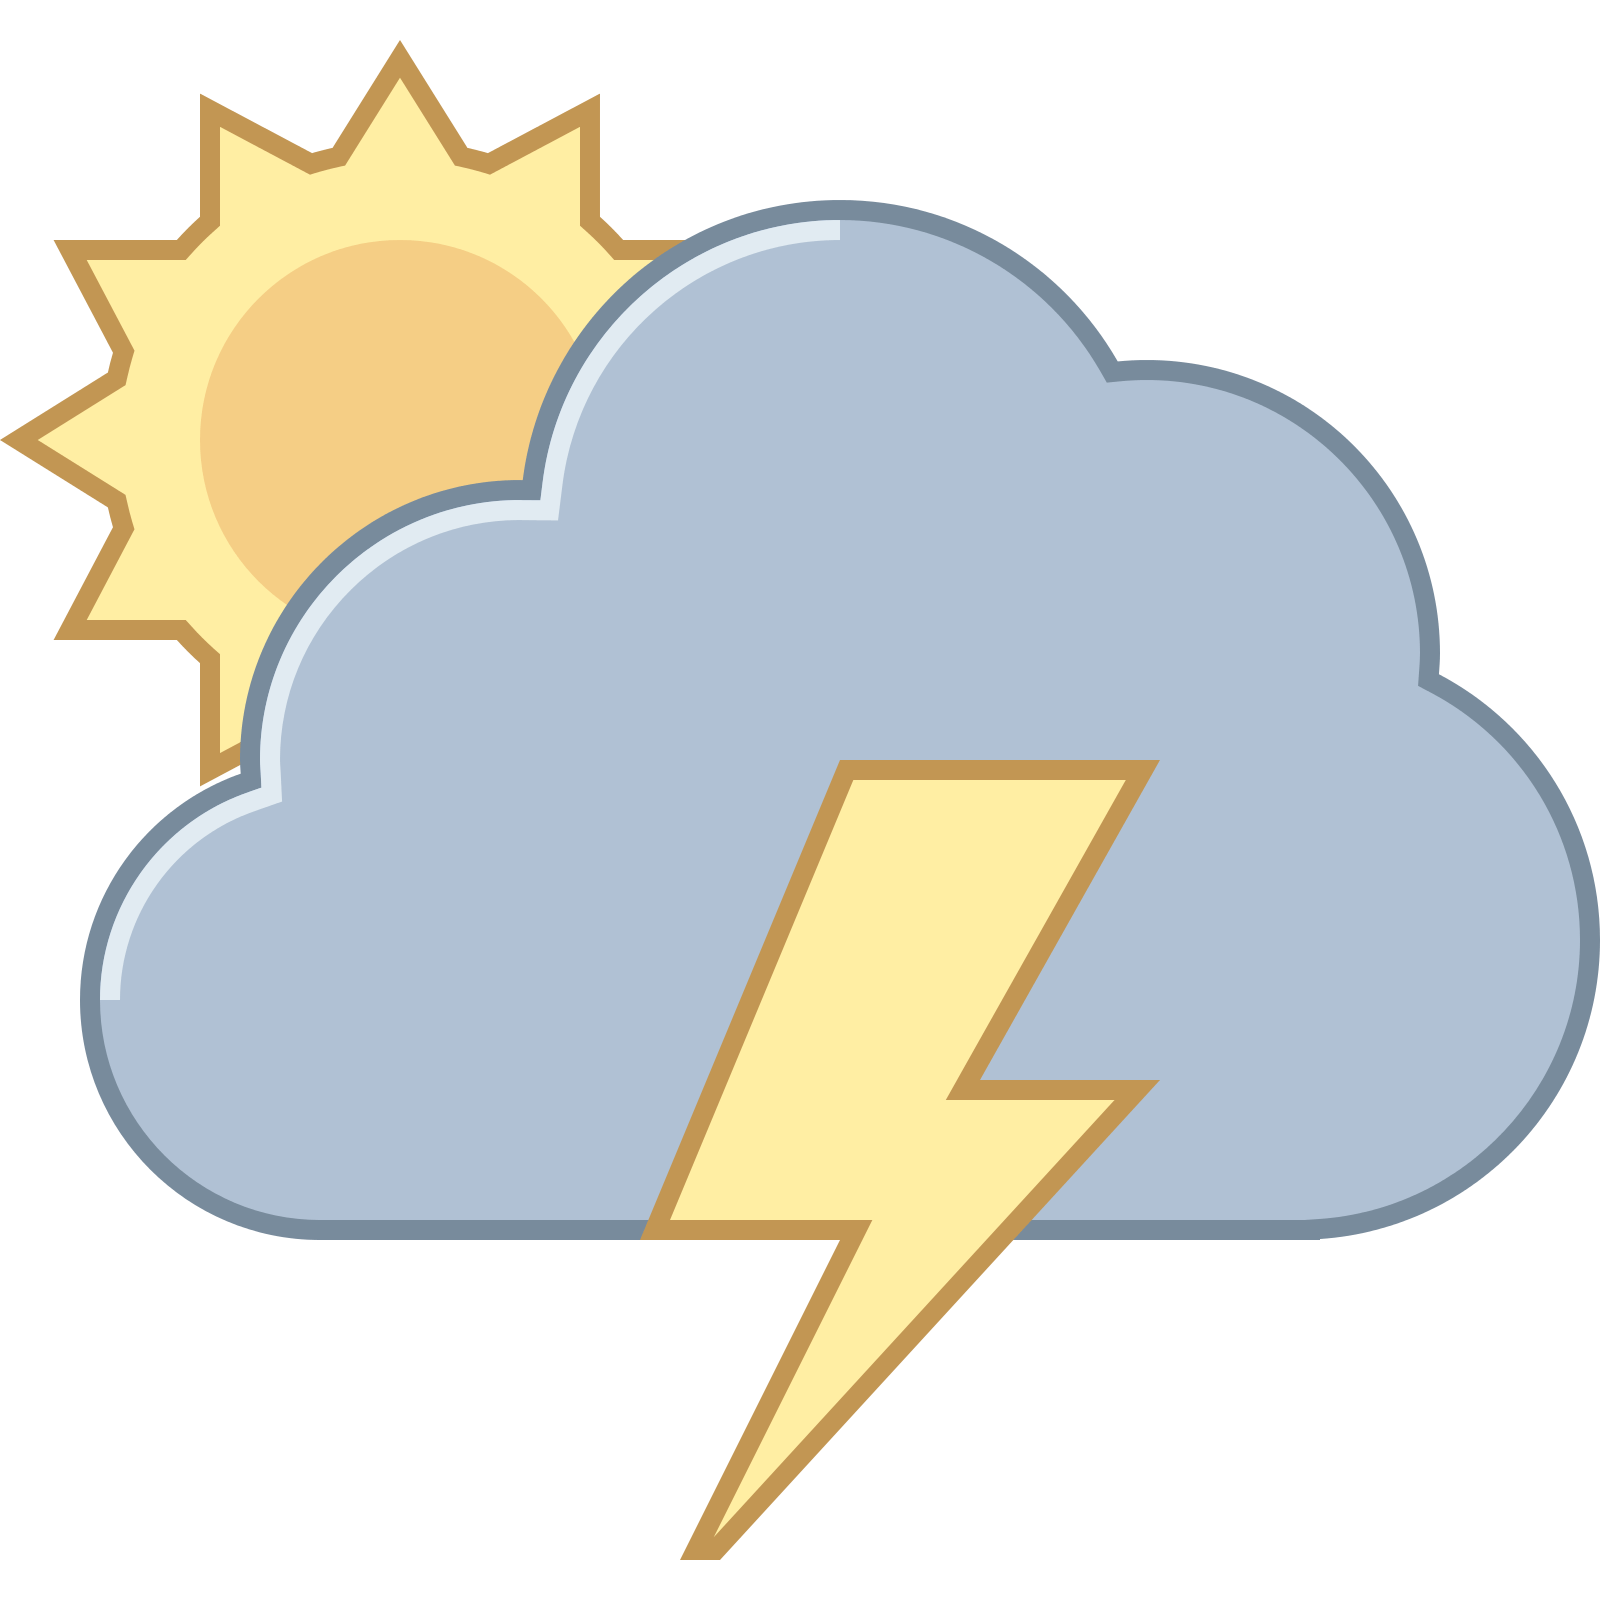 Cloudy clipart weather forecast. Lakes region nh report